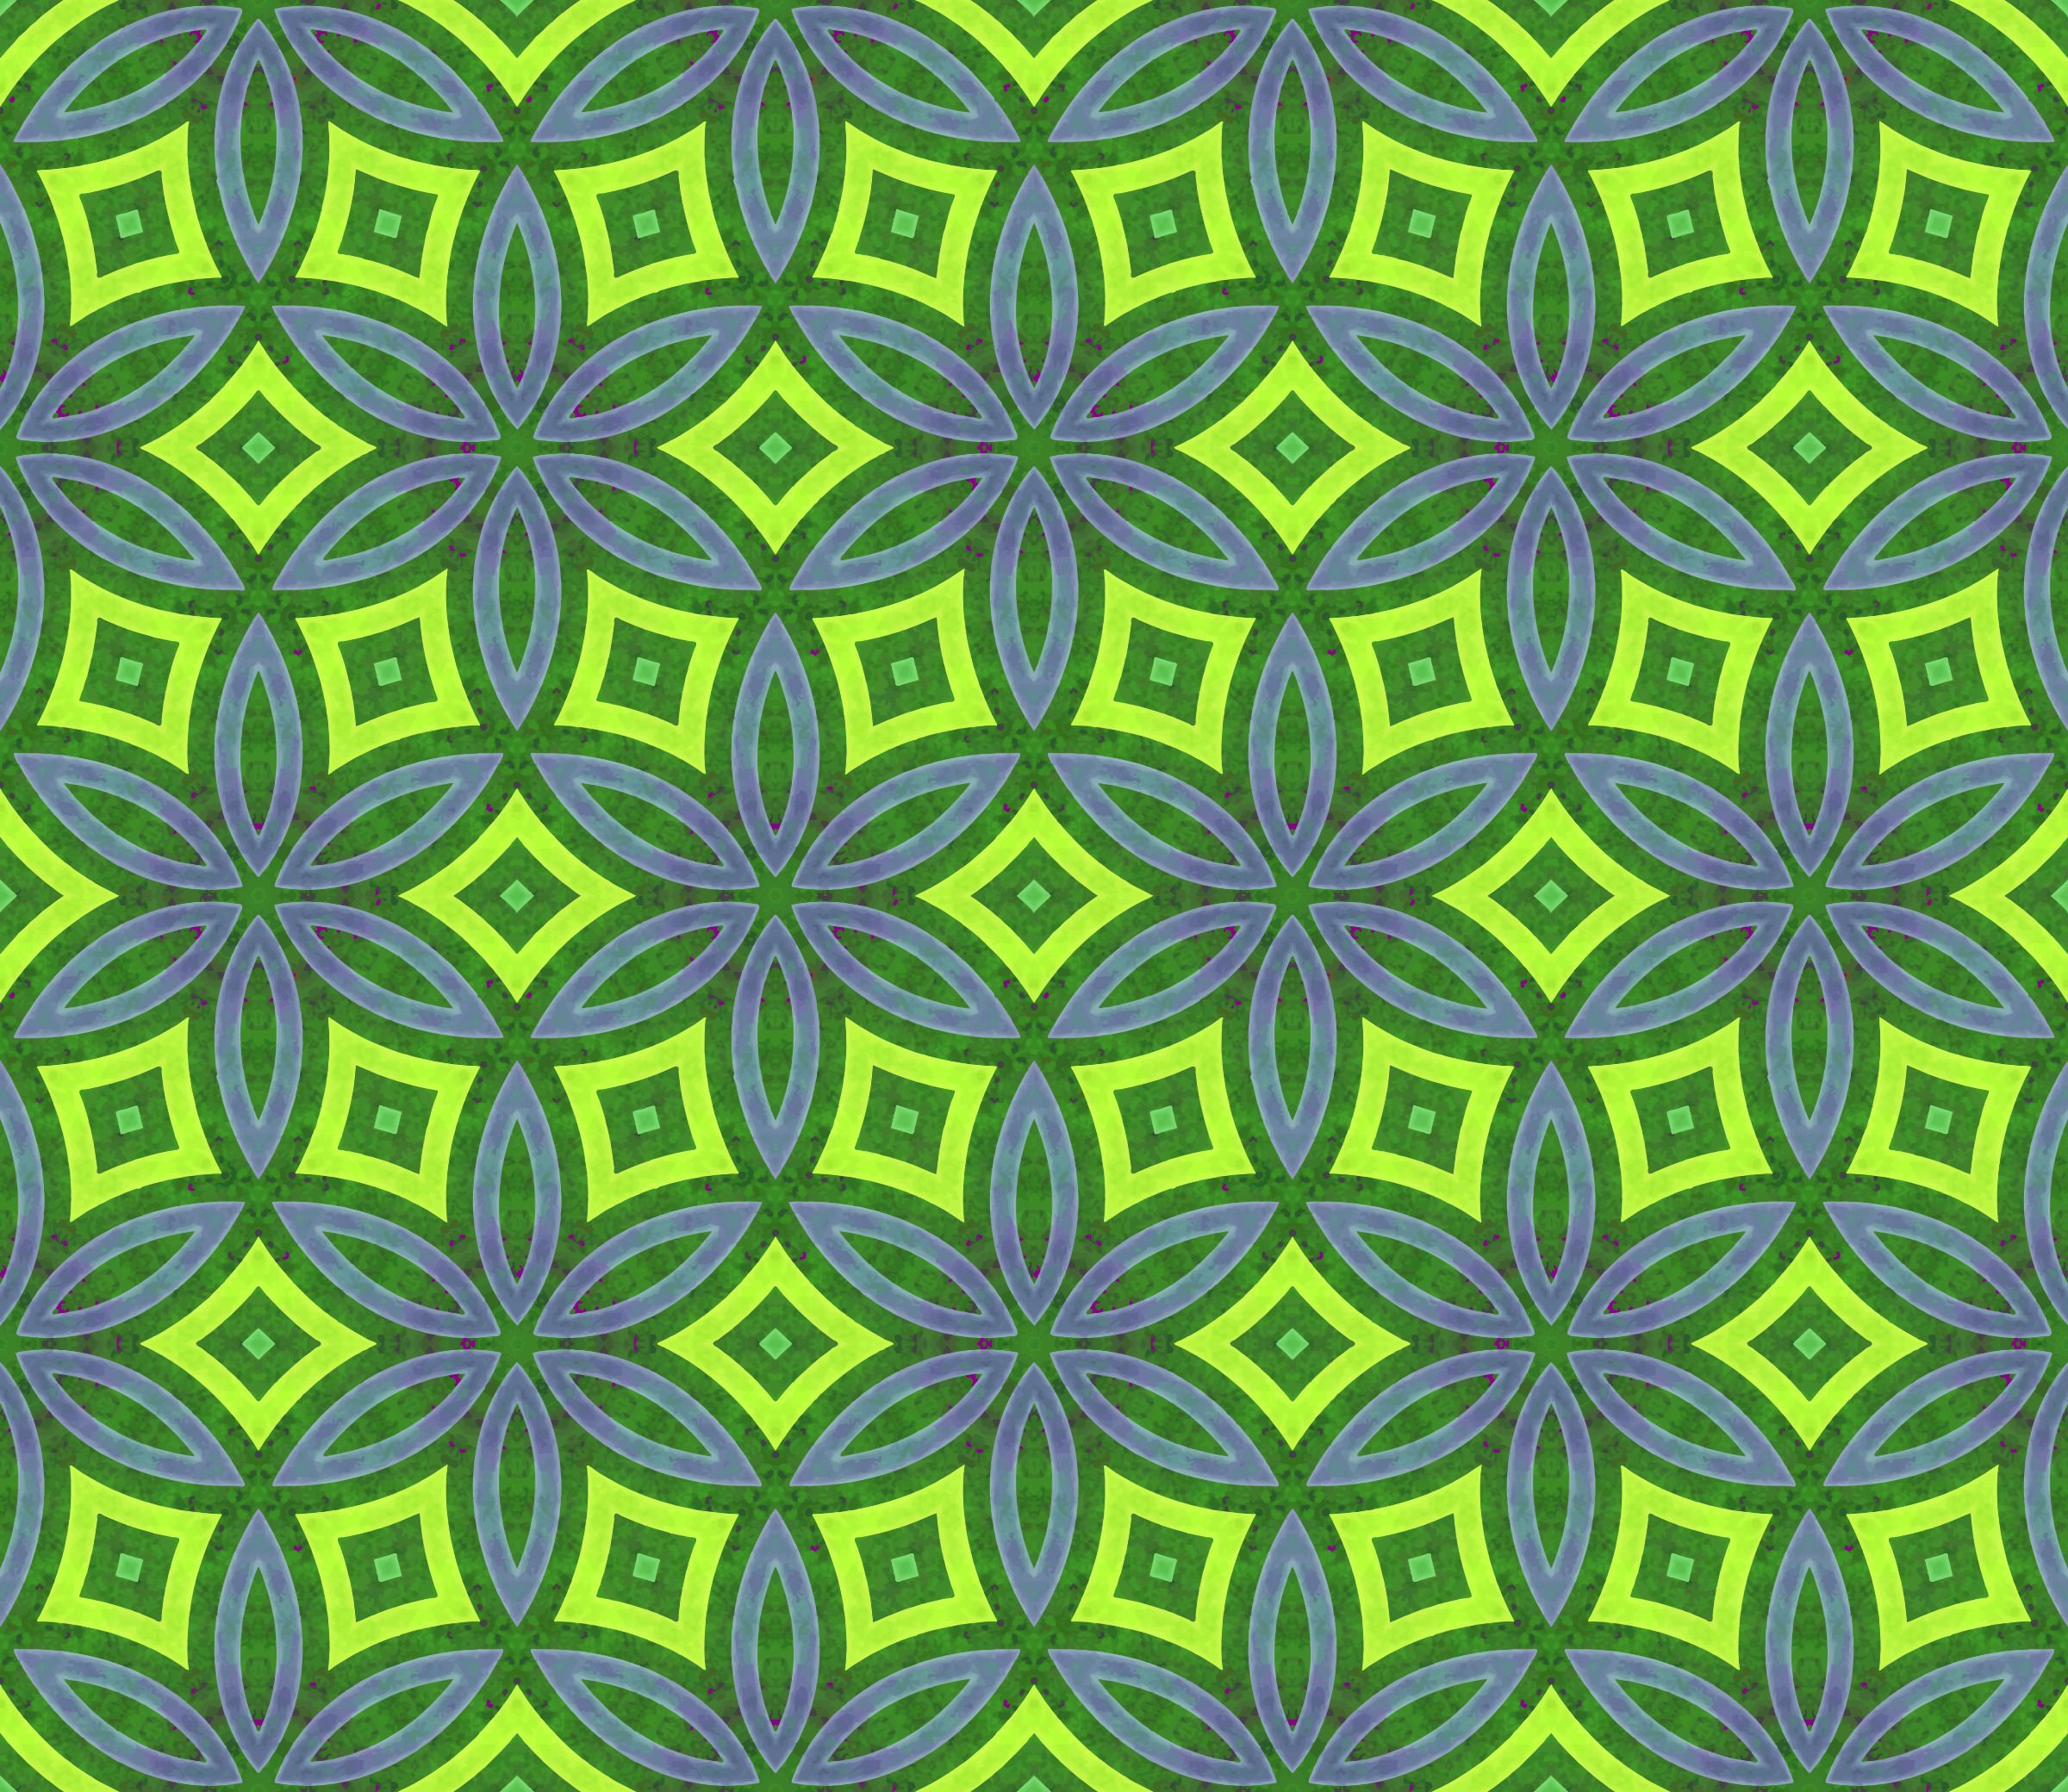 Background pattern 316 (colour 4) by Firkin